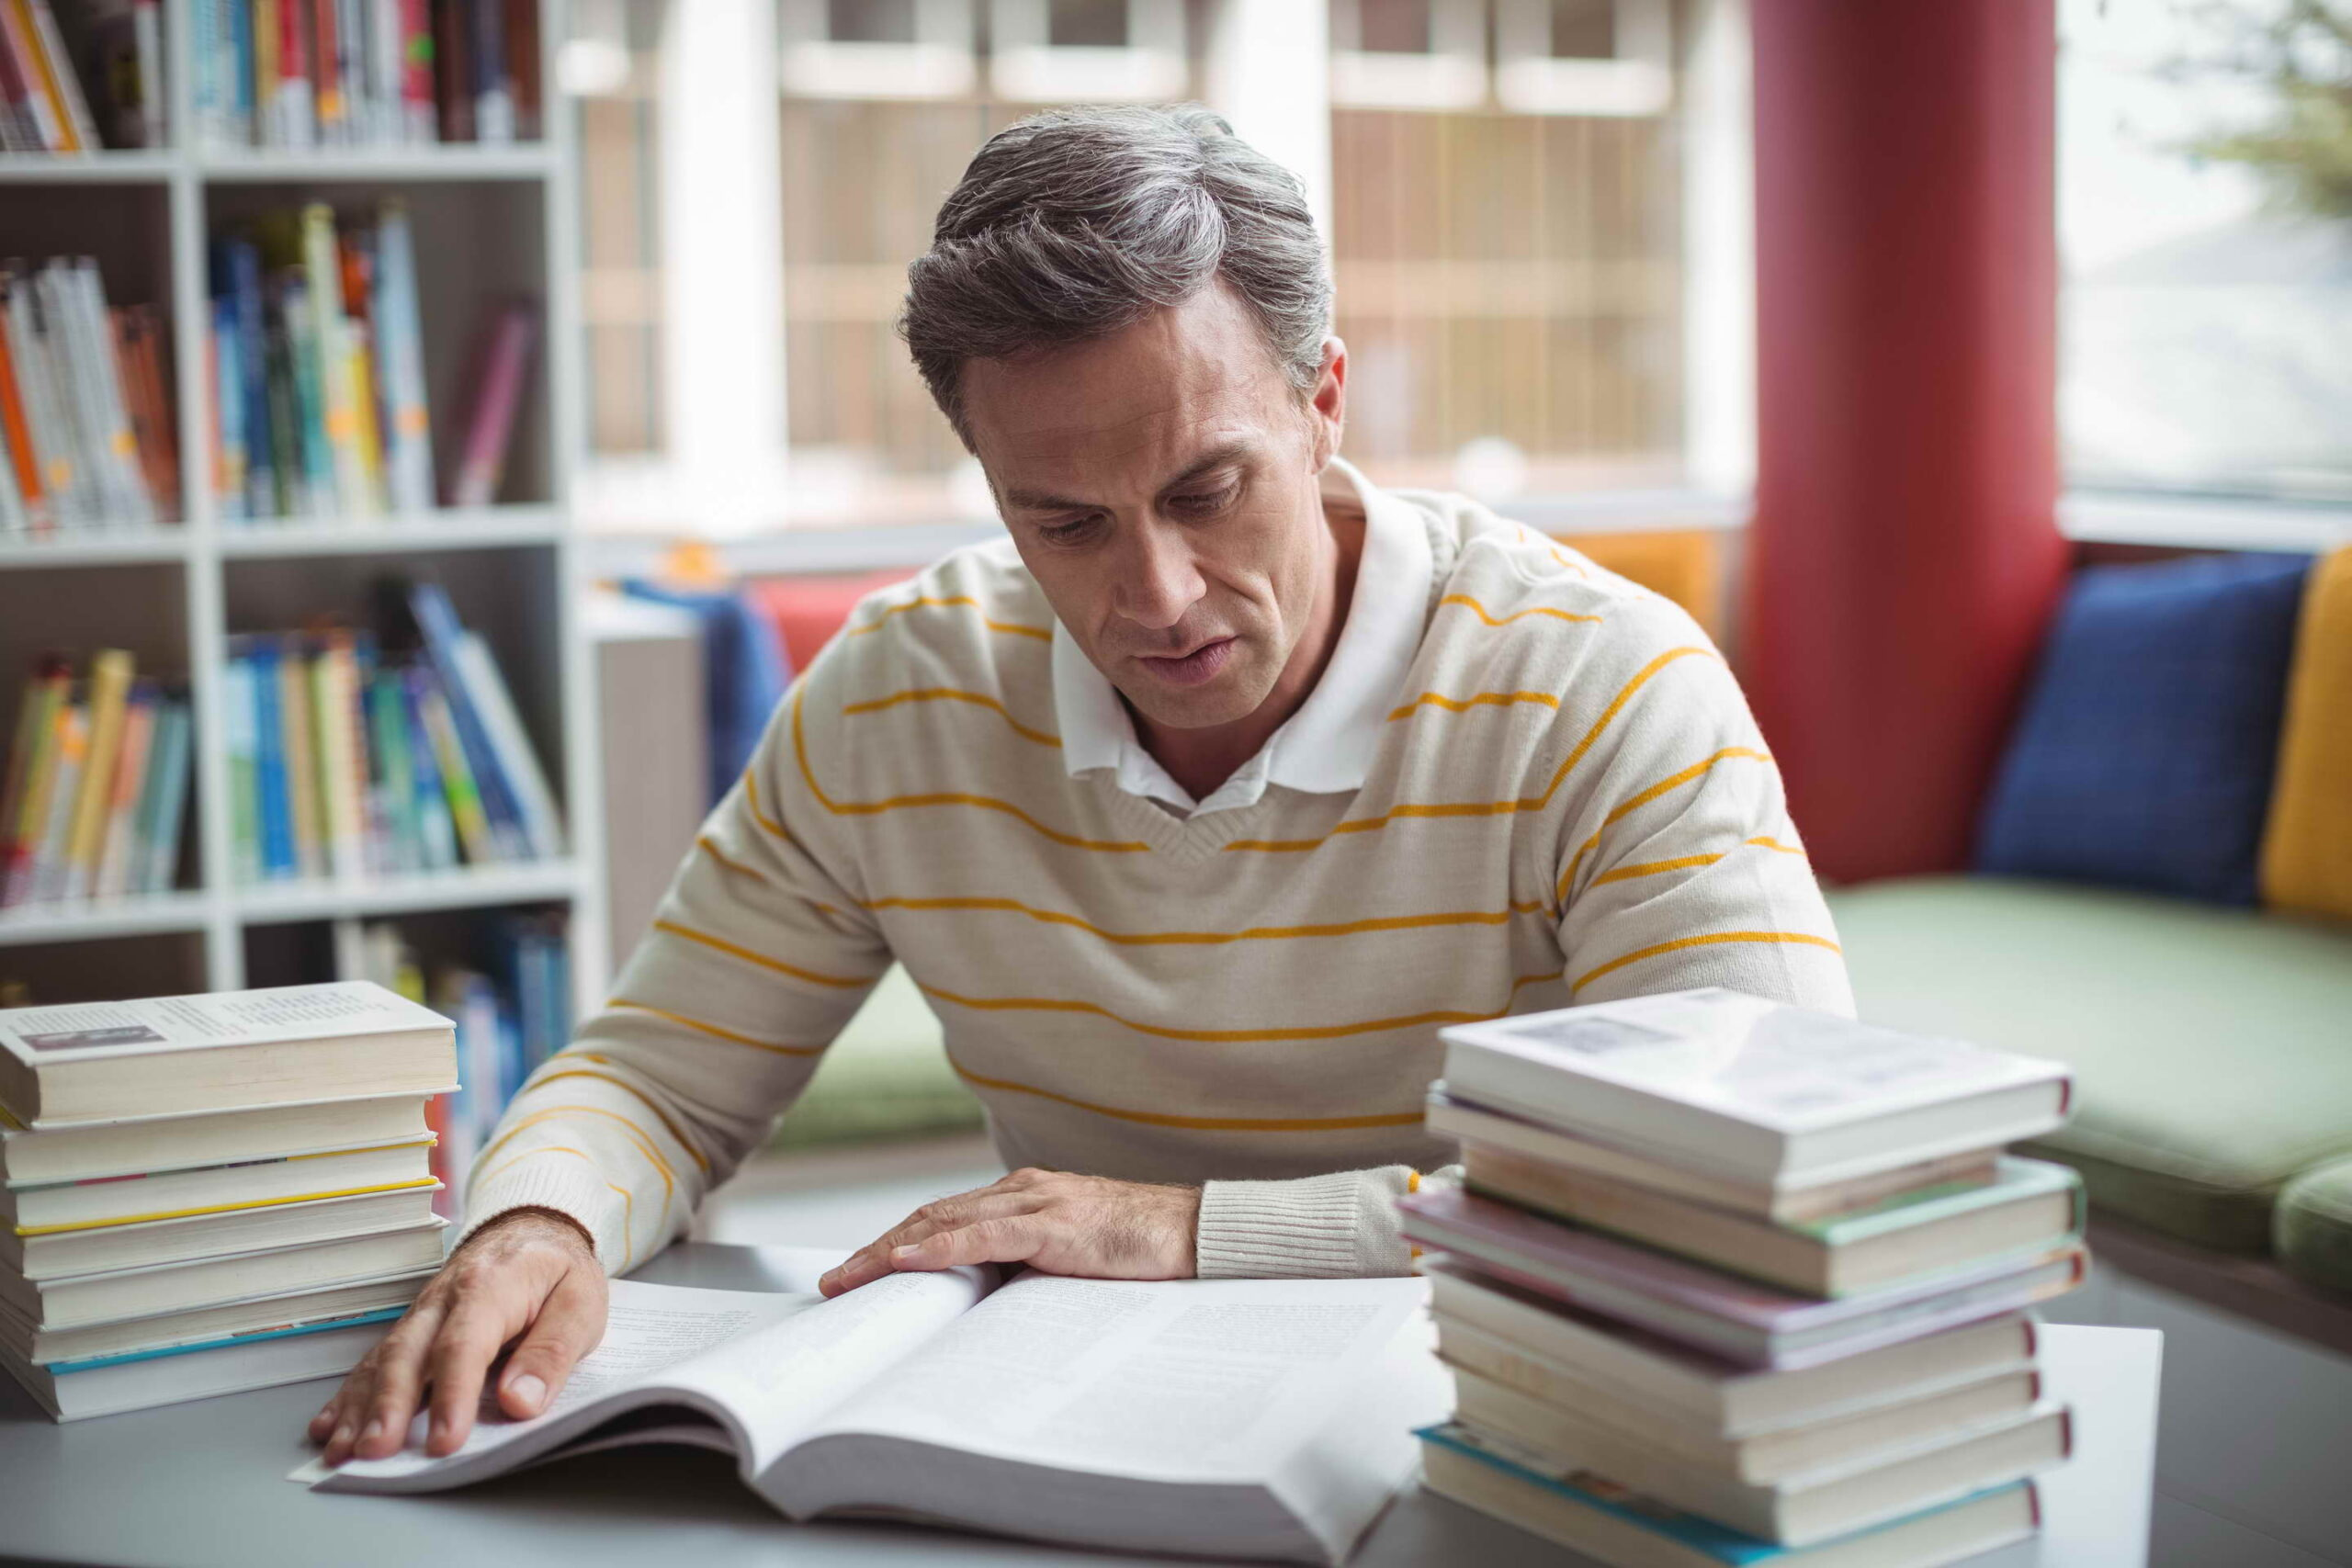 Attentive school teacher reading book in library at school